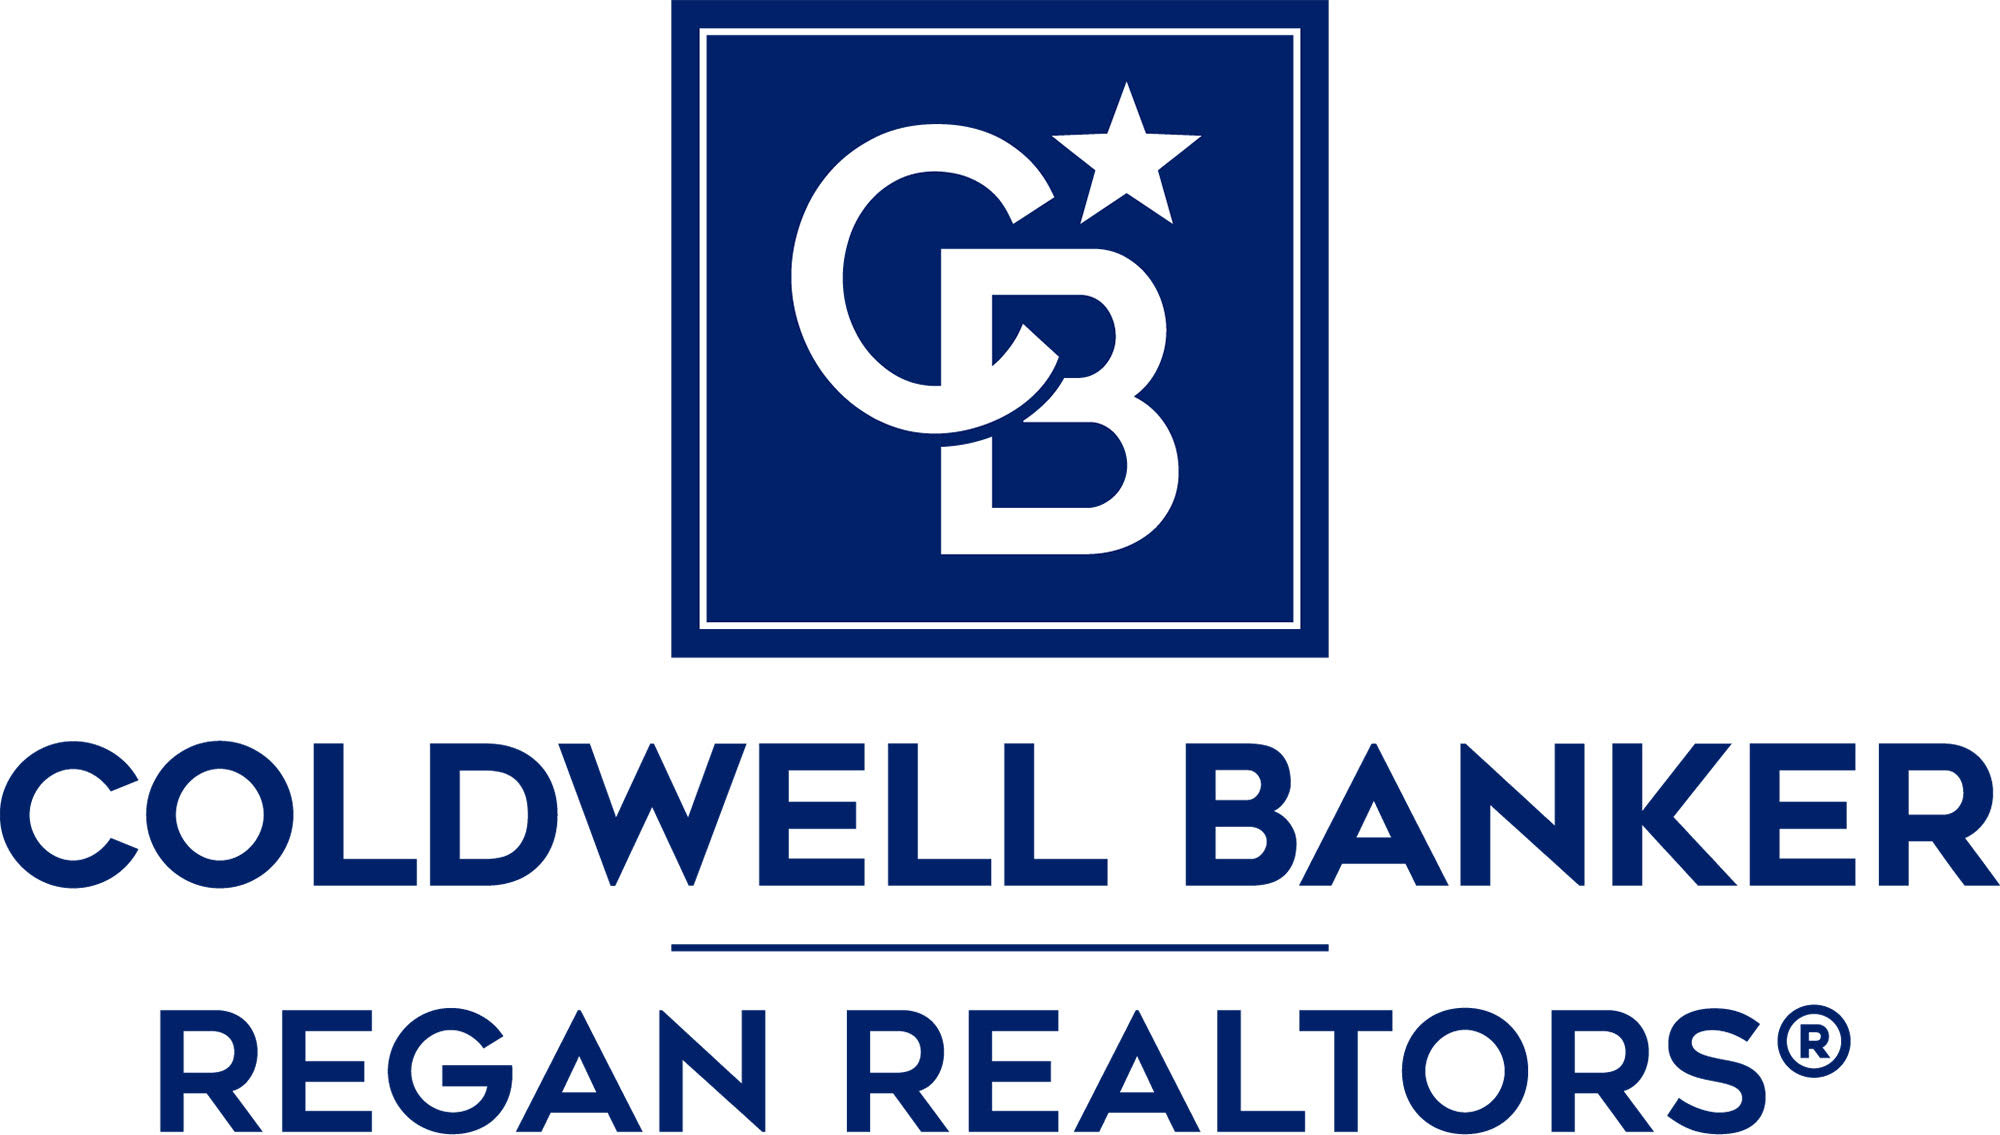 Greg Weis - Coldwell Banker Regan